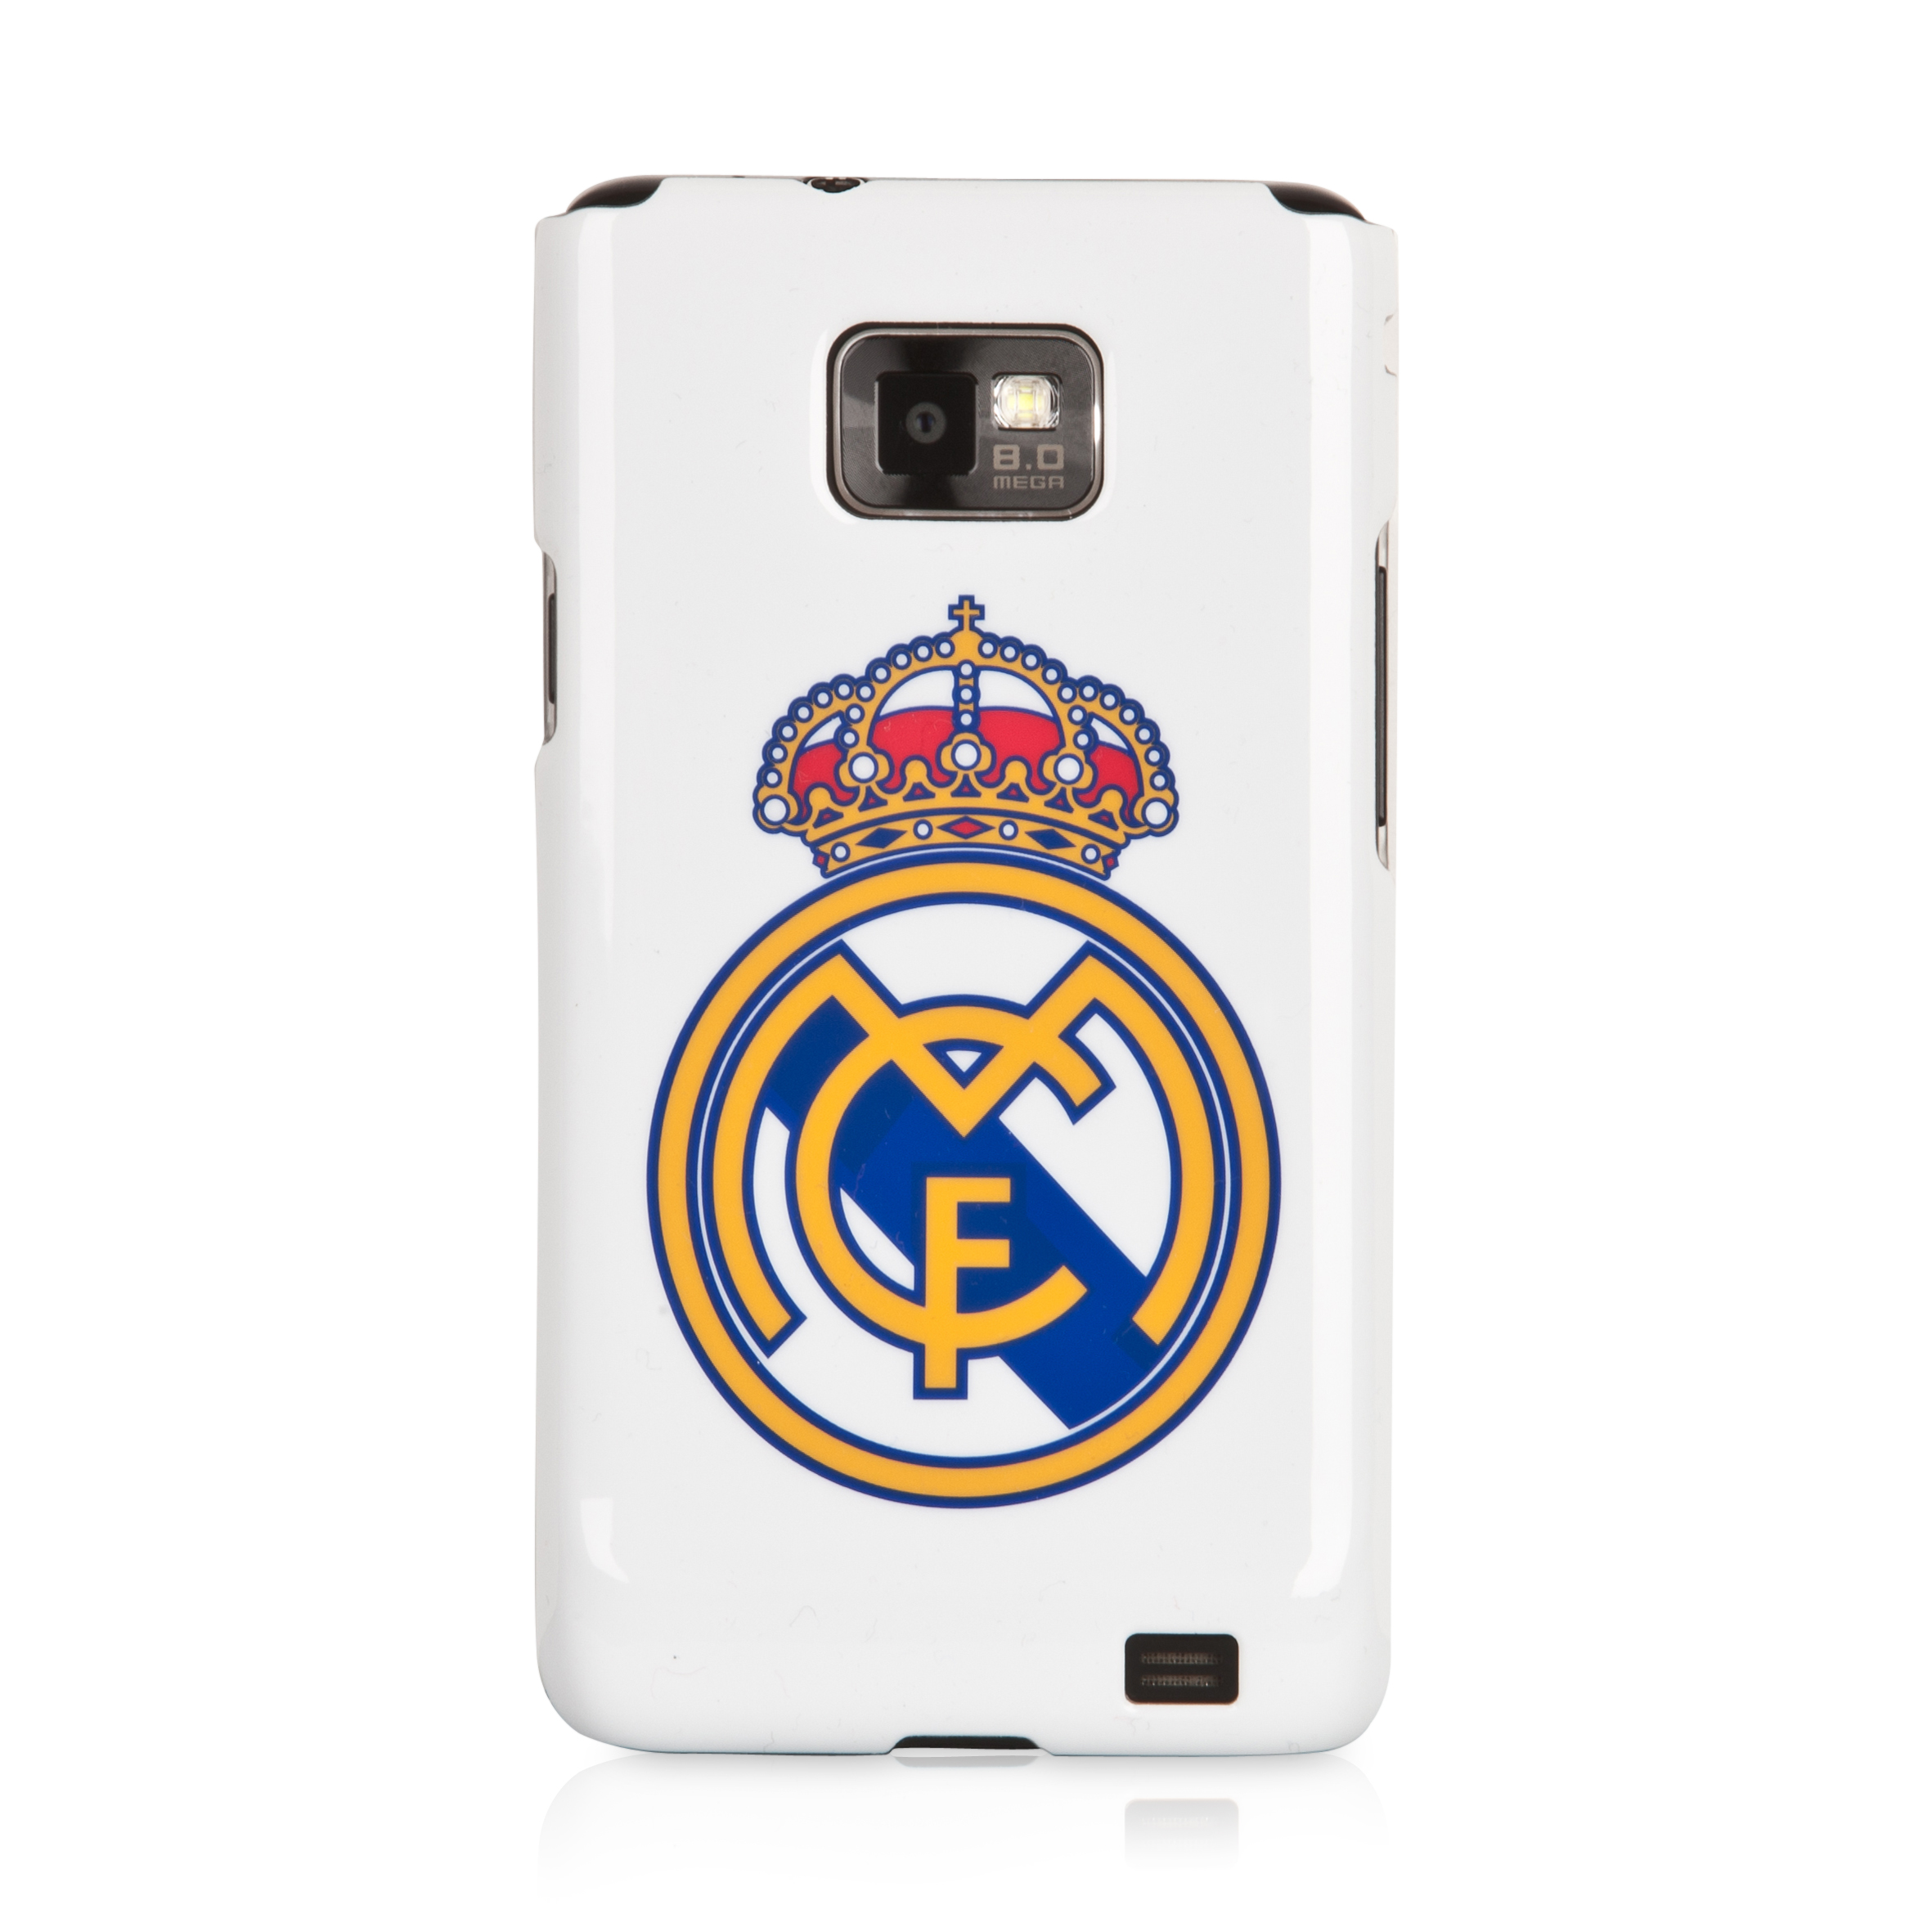 Real Madrid Samsung Galaxy S2 I9100 Phone Cover